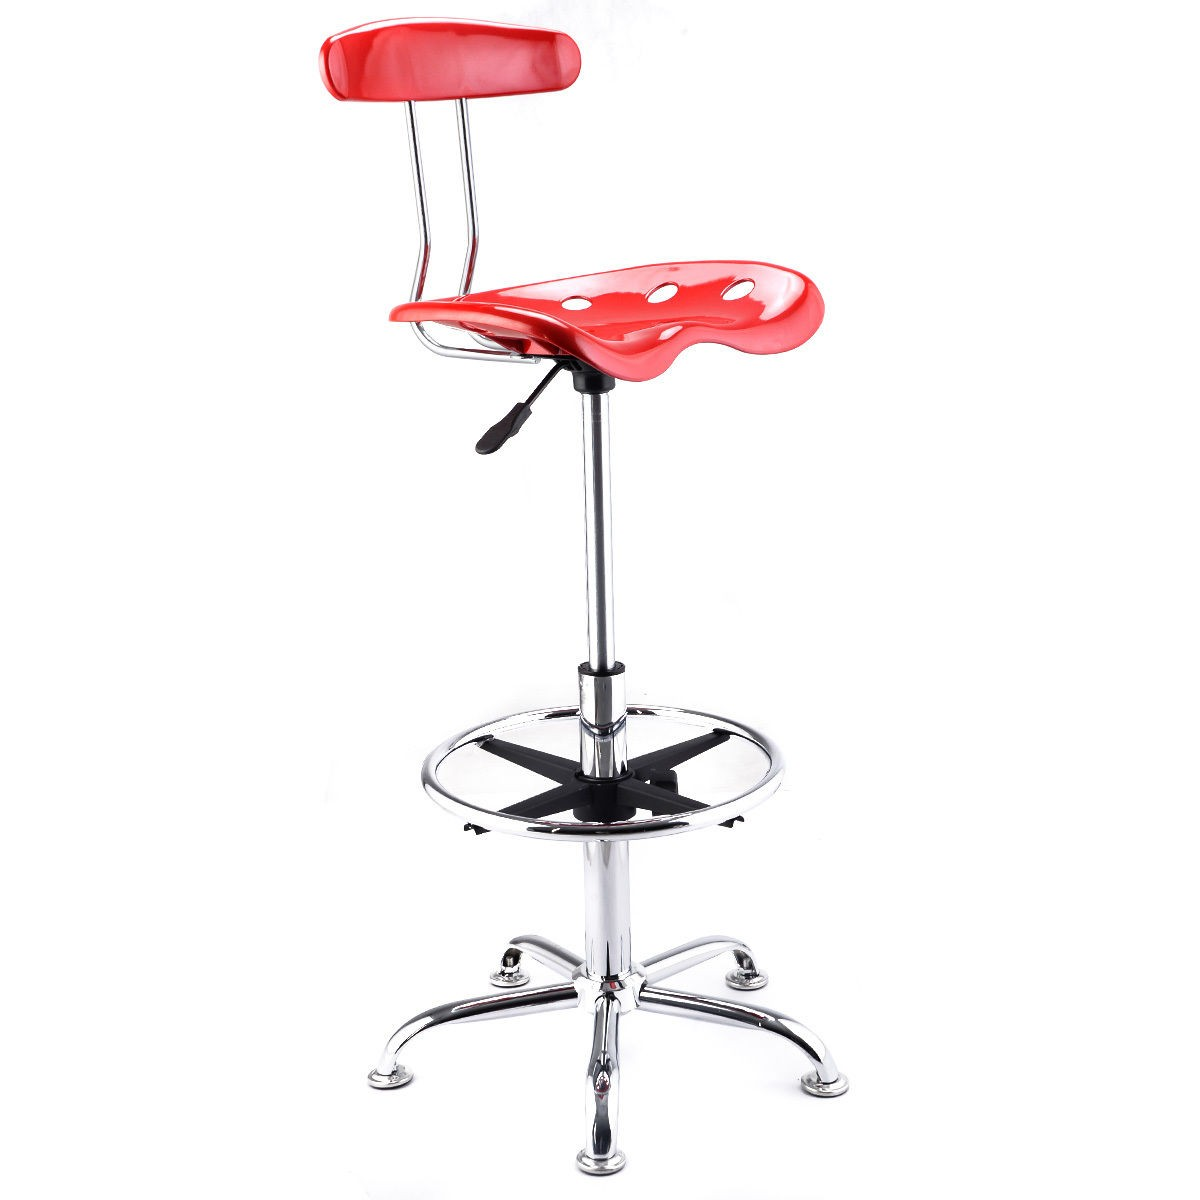 Adjustable Bar Stools Abs Tractor Seat Swivel Chrome